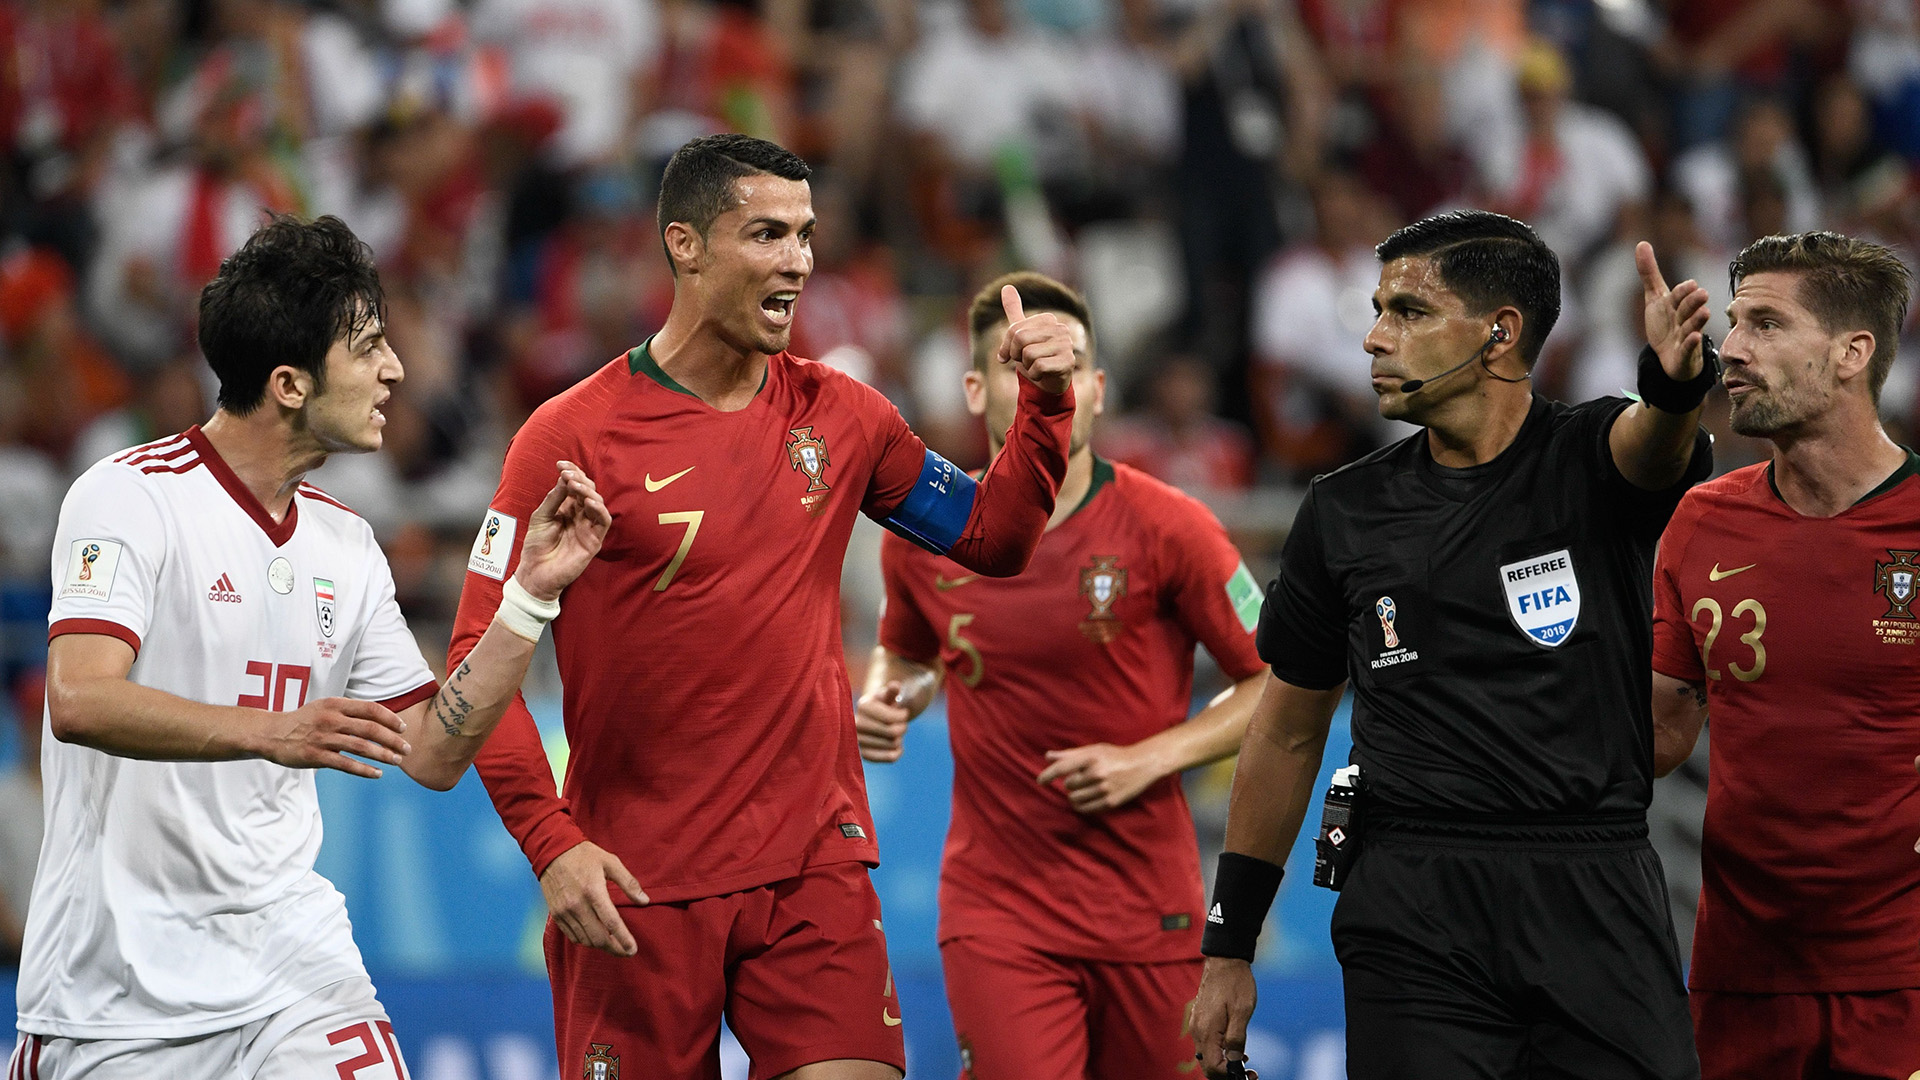 Cristiano Ronaldo Referee Portugal Iran World Cup